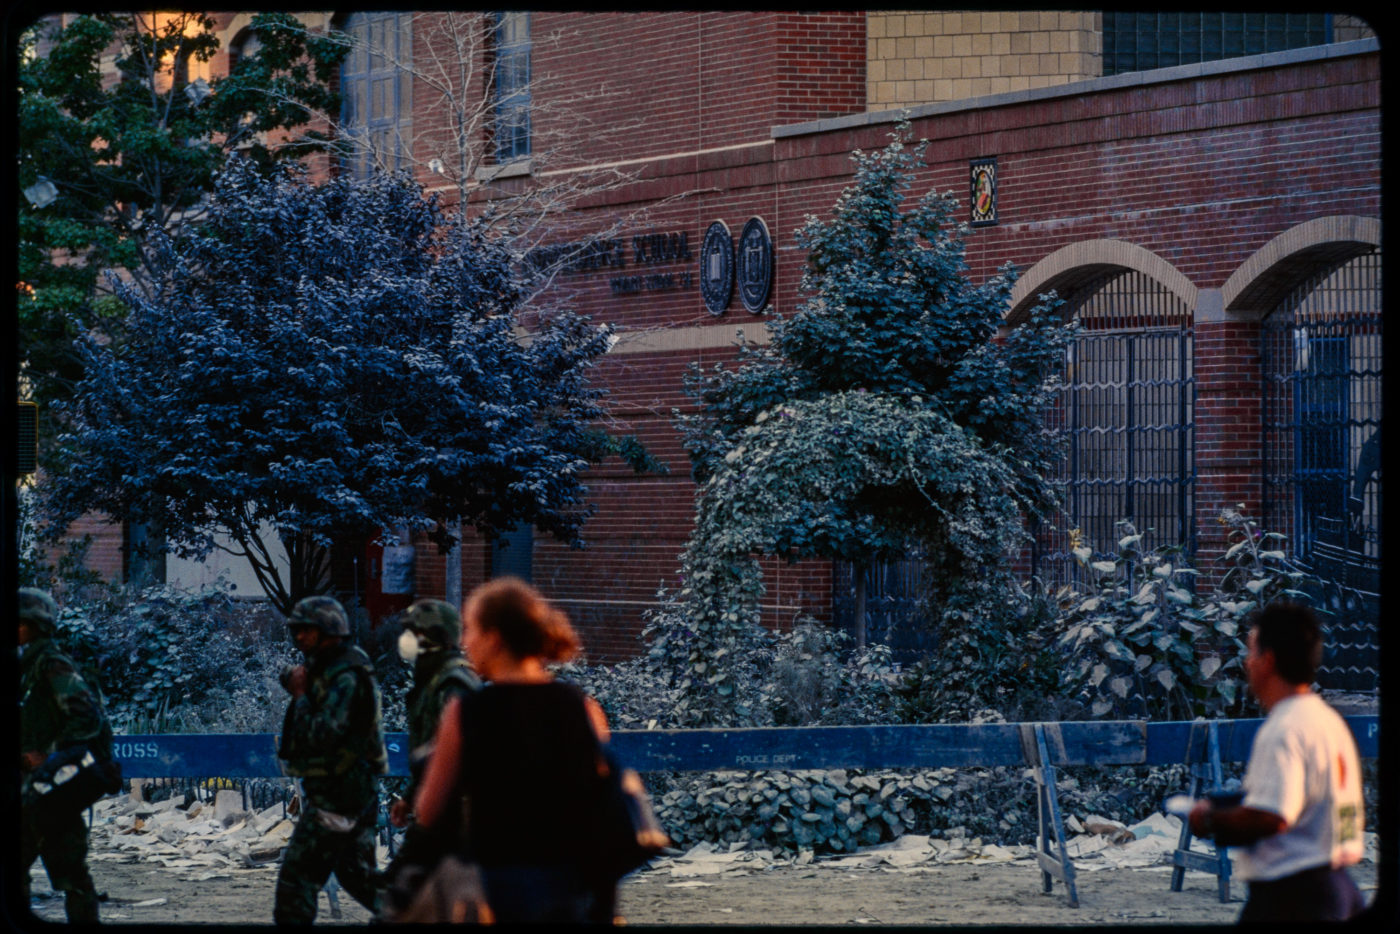 New Yorkers and Army pass by Police Line Outside 292 Greenwich Street, PS 234 Independence School.jpg